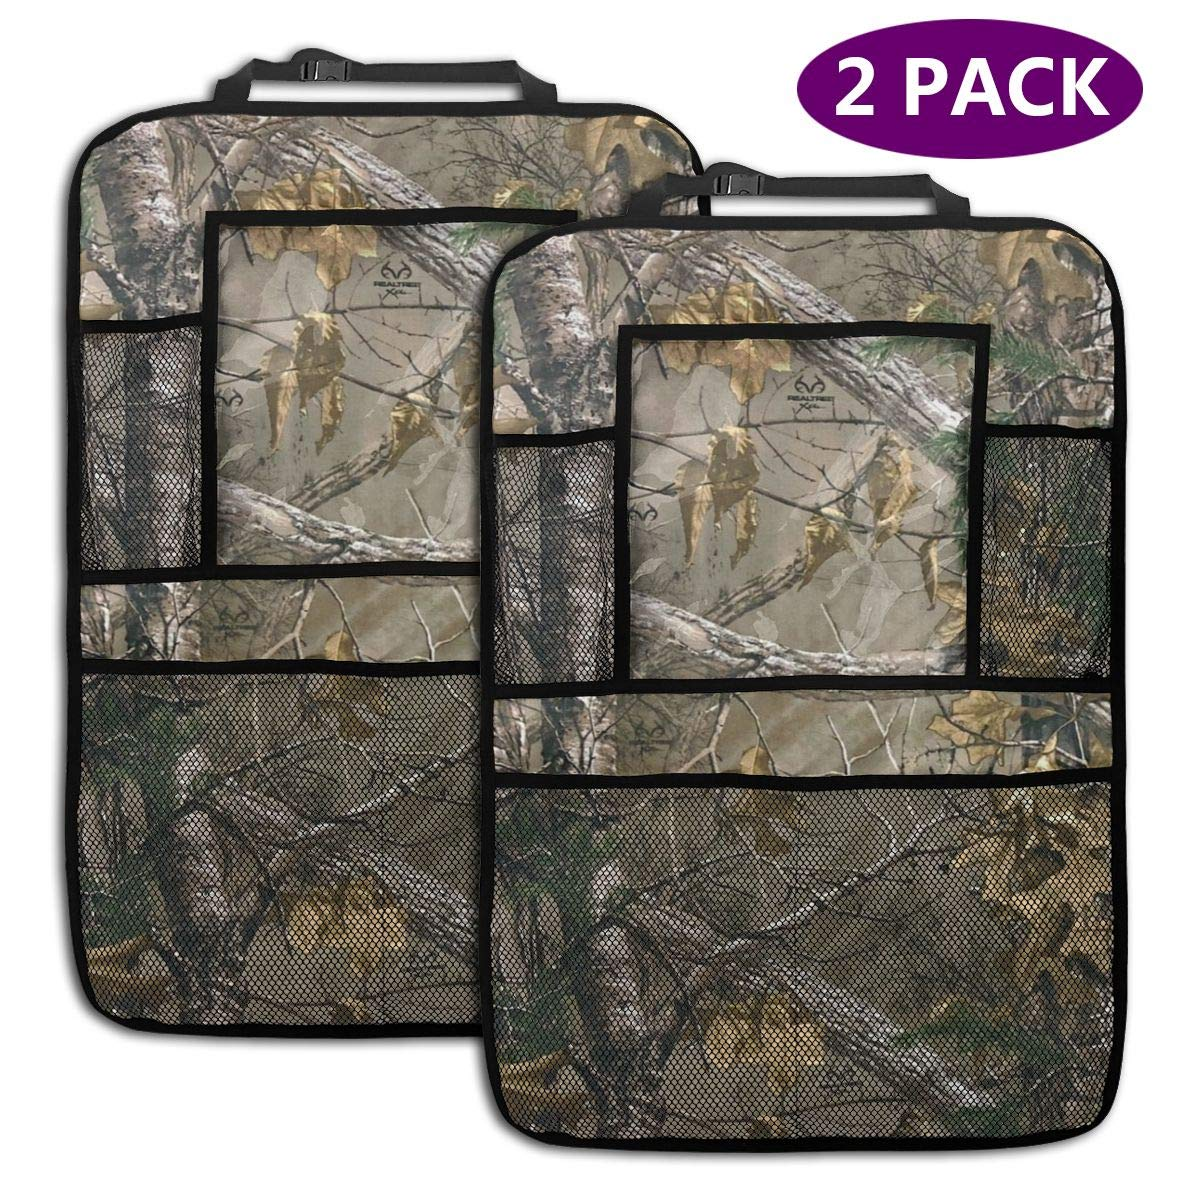 QF6FEICHAN Realtree Car Seat Back Protectors with Storage Pockets Kick Mats Accessories for Kids and Toddlers by QF6FEICHAN